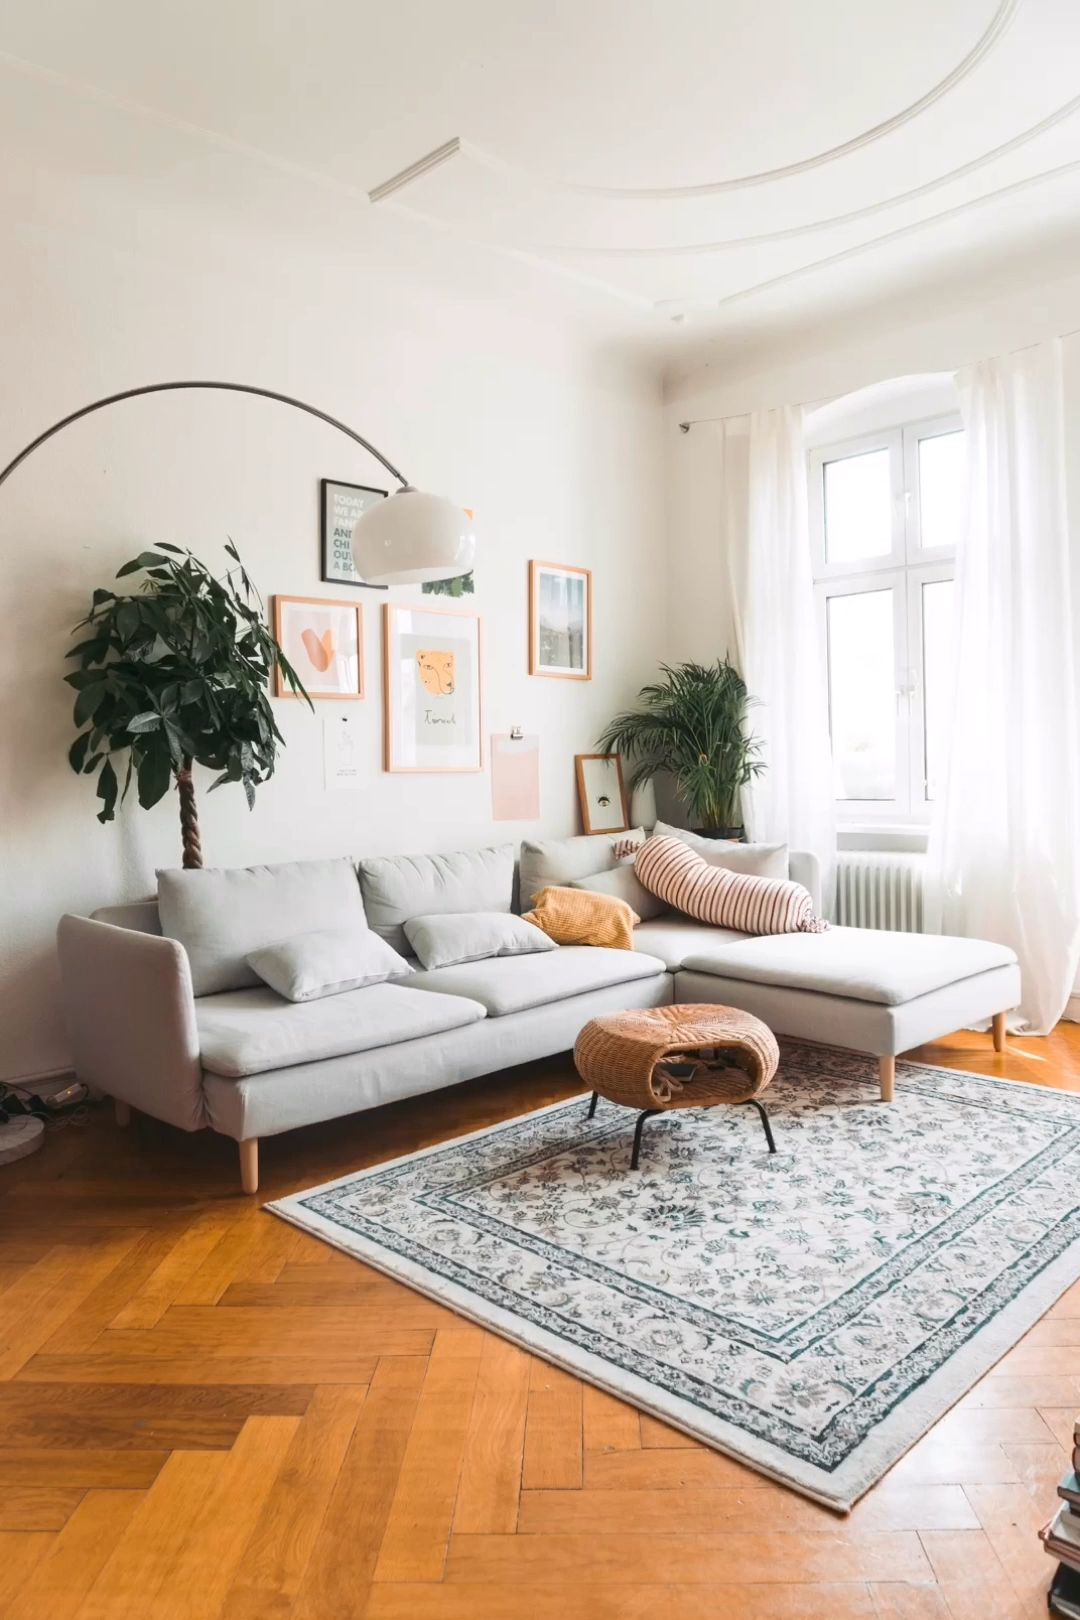 The 6 Dos and Don'ts of Rearranging -